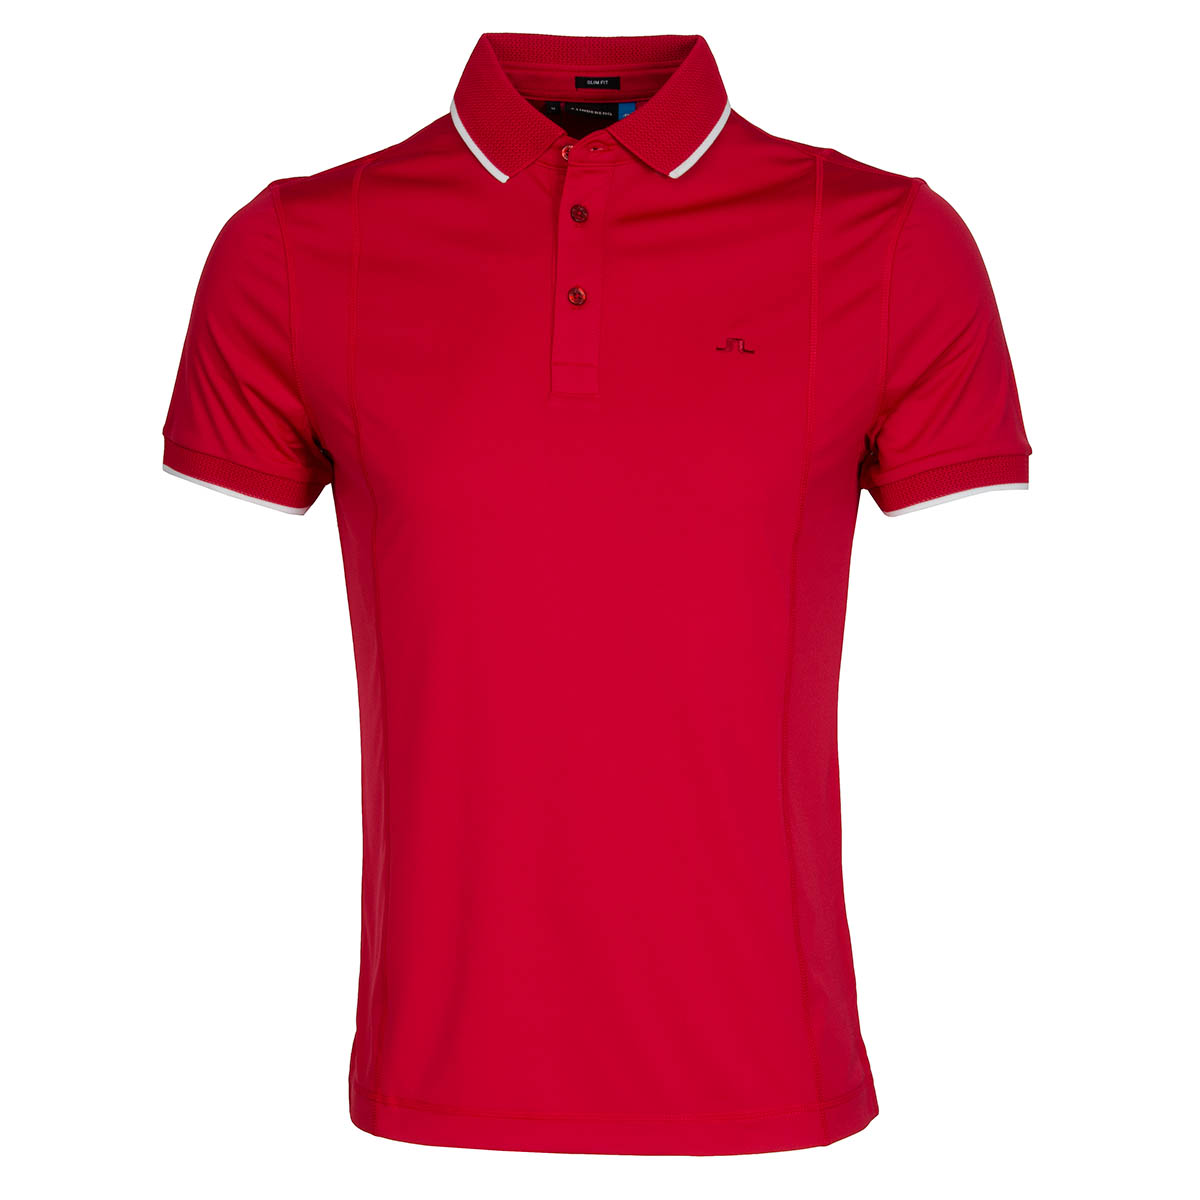 J lindeberg will tx polo shirt red intense scottsdale golf for Texas a m golf shirt